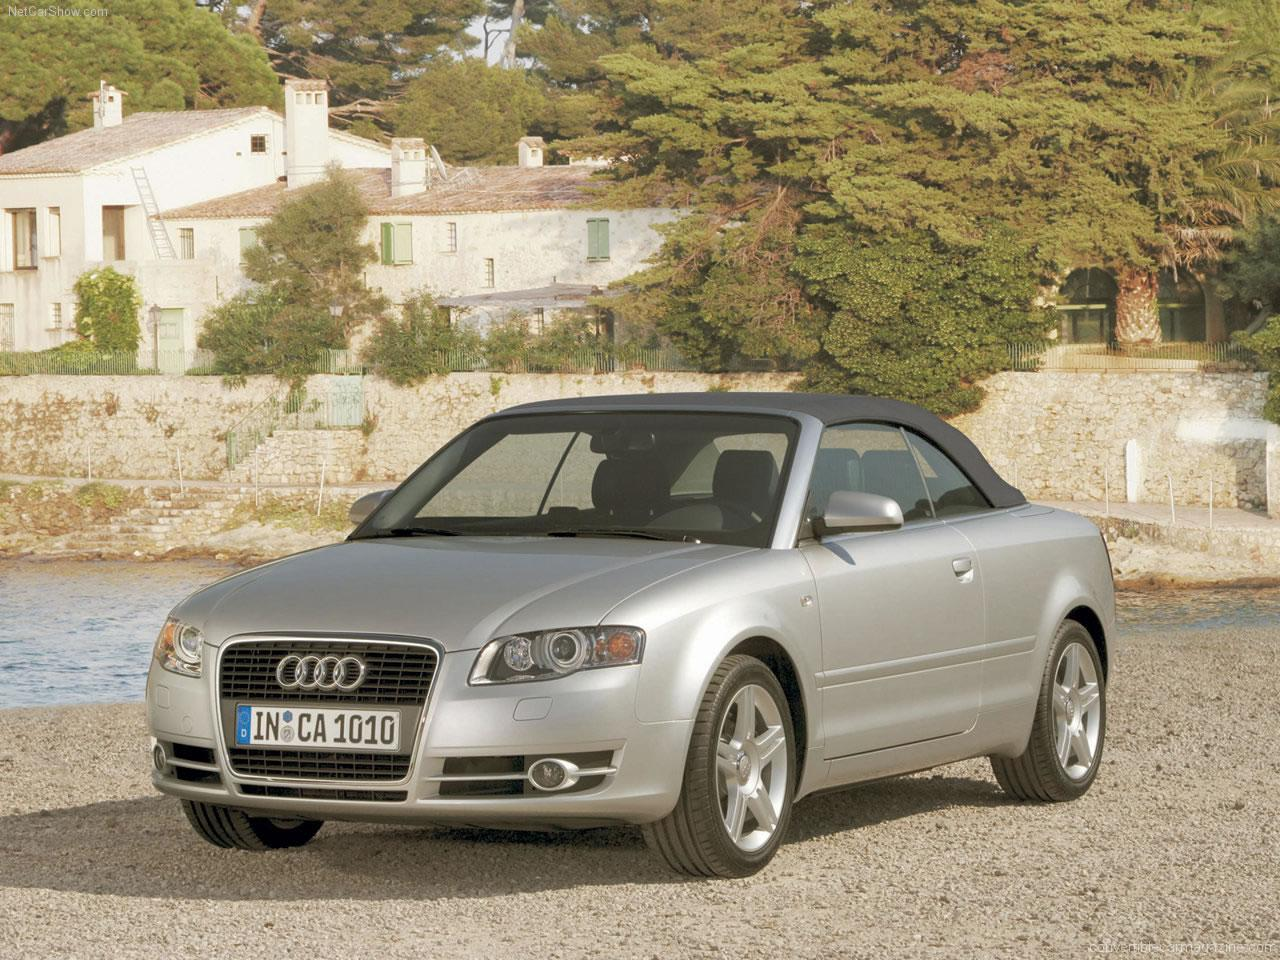 audi a4 cabriolet buying guide rh convertiblecarmagazine com 2004 audi a4 cabriolet owners manual pdf 2004 audi a4 cabriolet owners manual